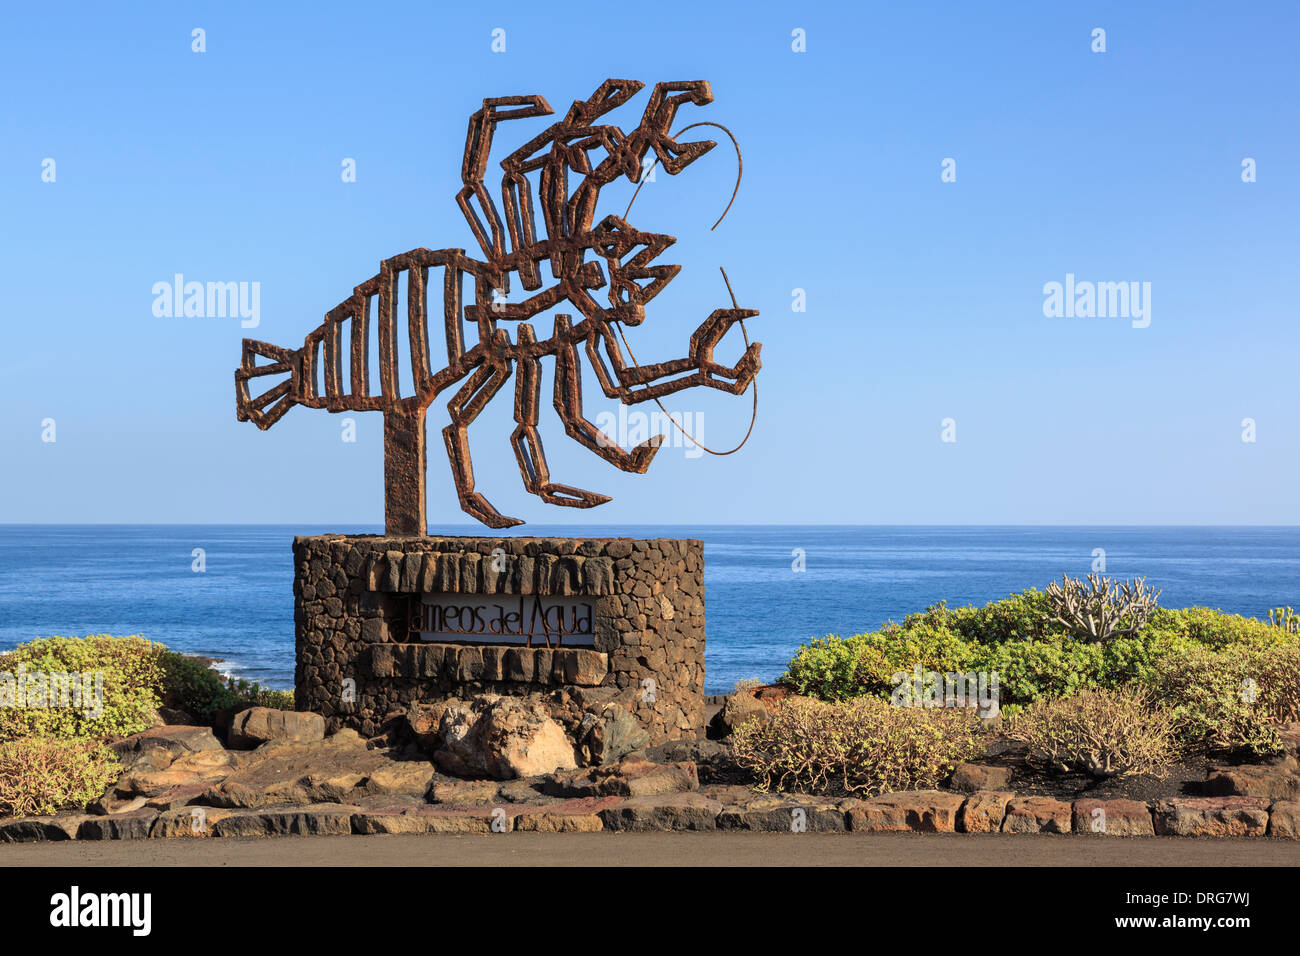 Lobster sculpture by Cesar Manrique at Jameos de Agua volcanic caves attraction near Arrieta, Lanzarote, Canary Islands, Spain - Stock Image